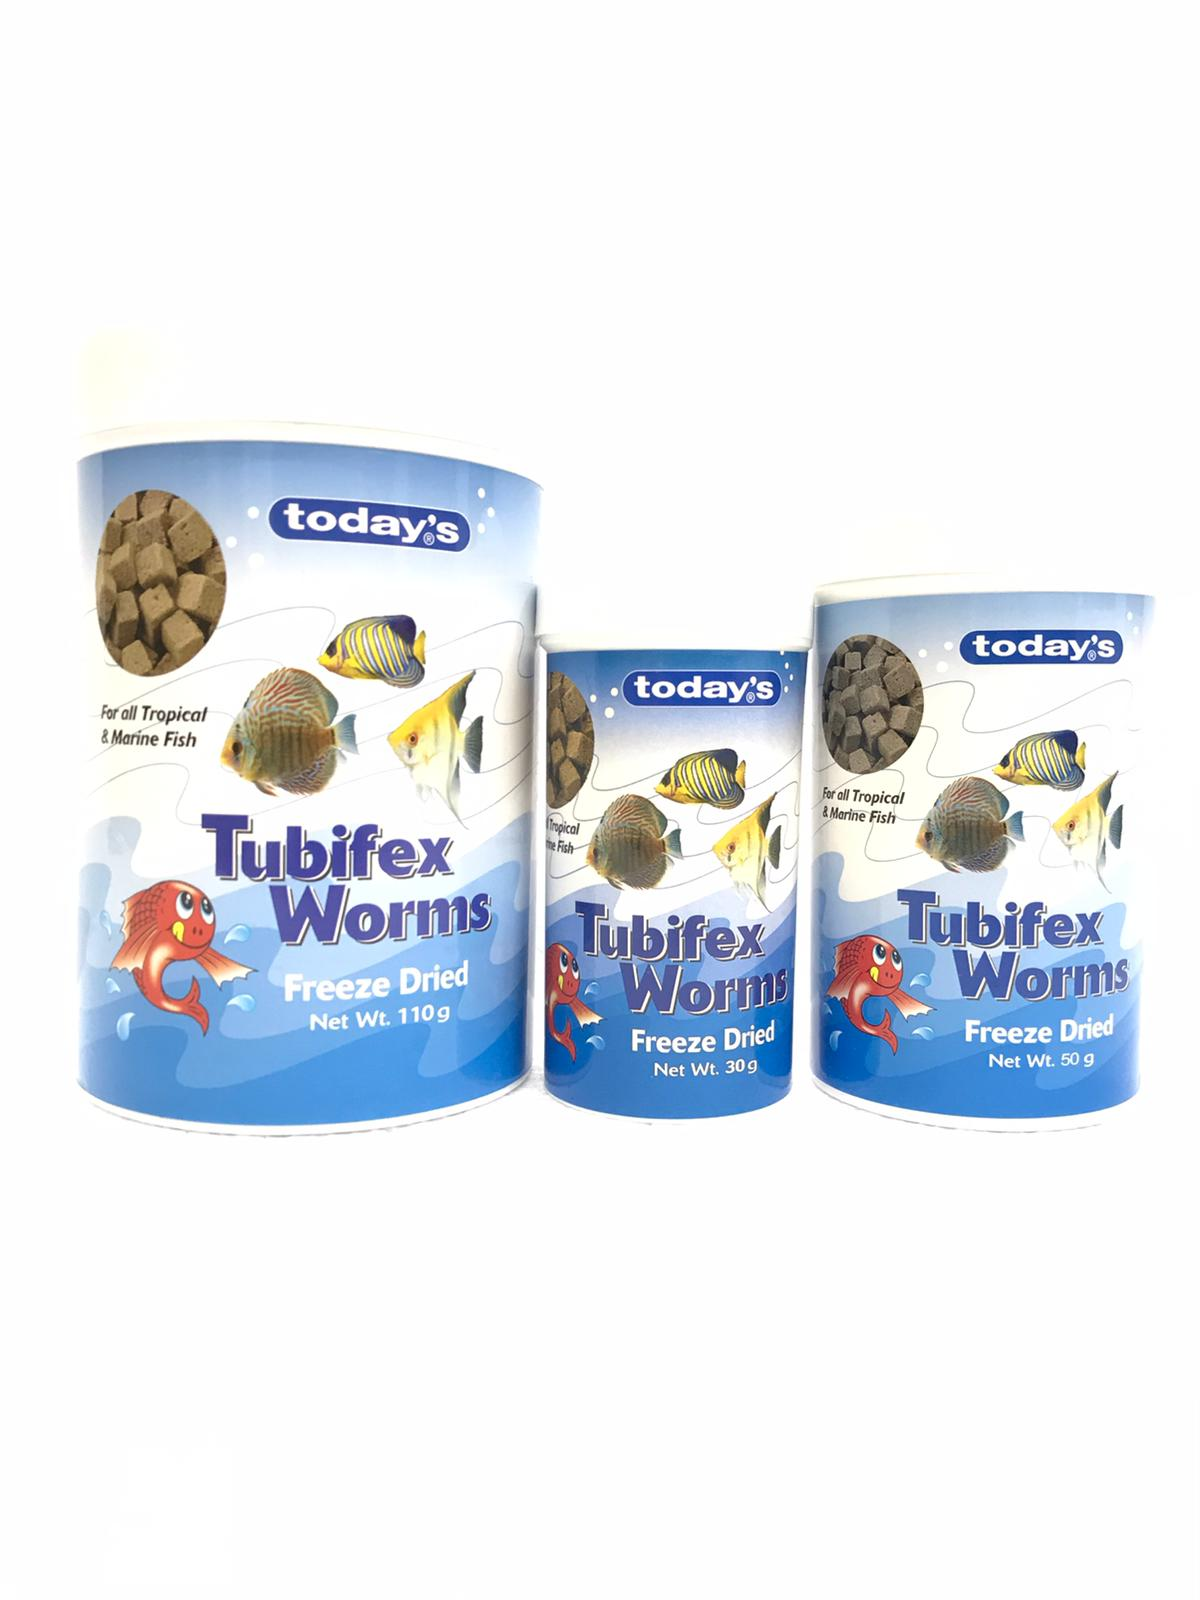 Today Freeze Dried Tubifex Worms